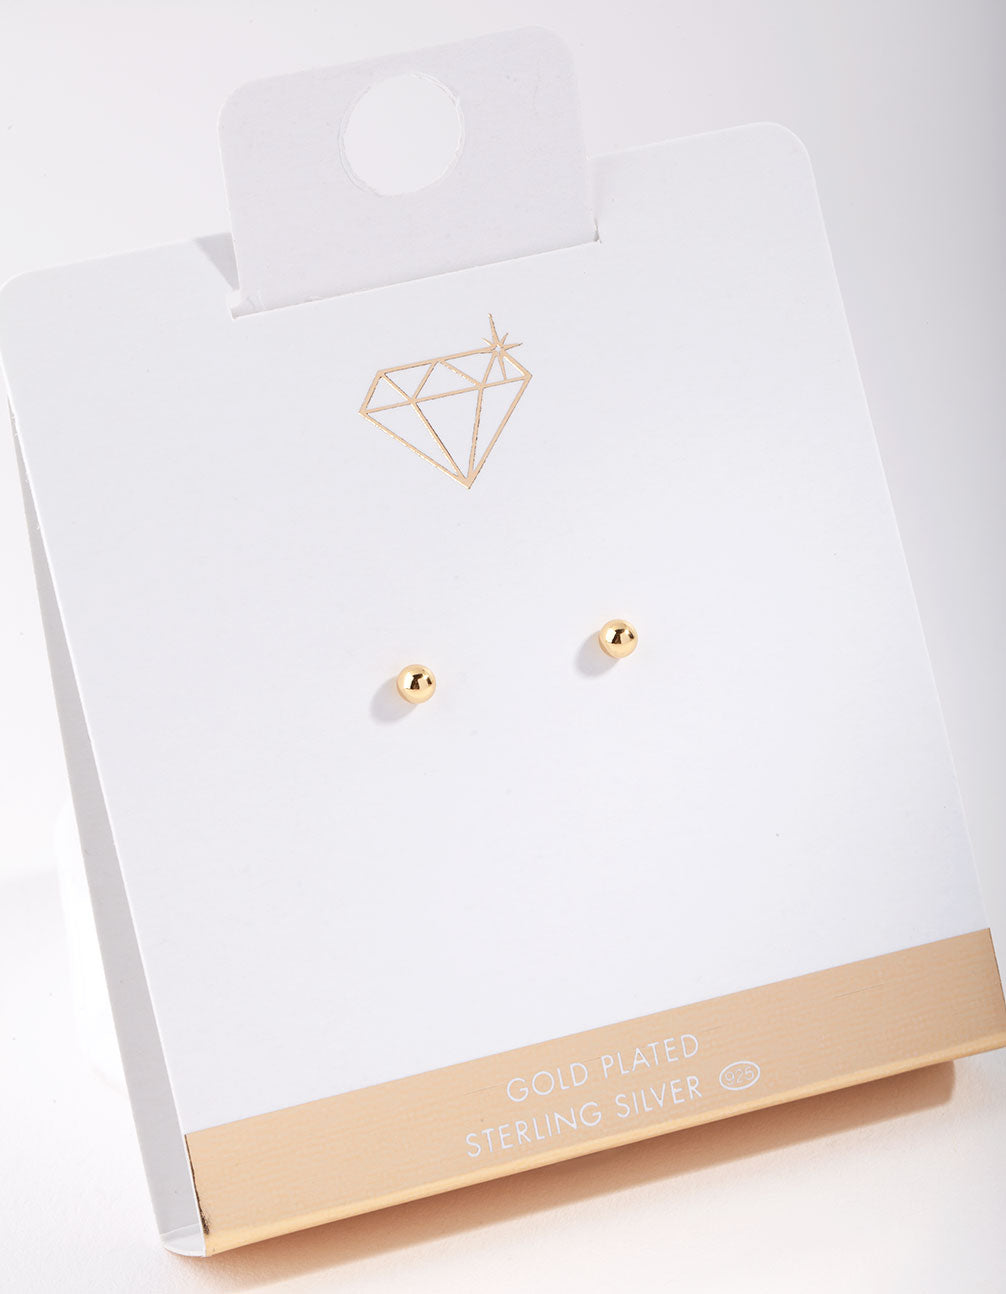 Gold Plated Sterling Silver 3mm Ball Stud Earring